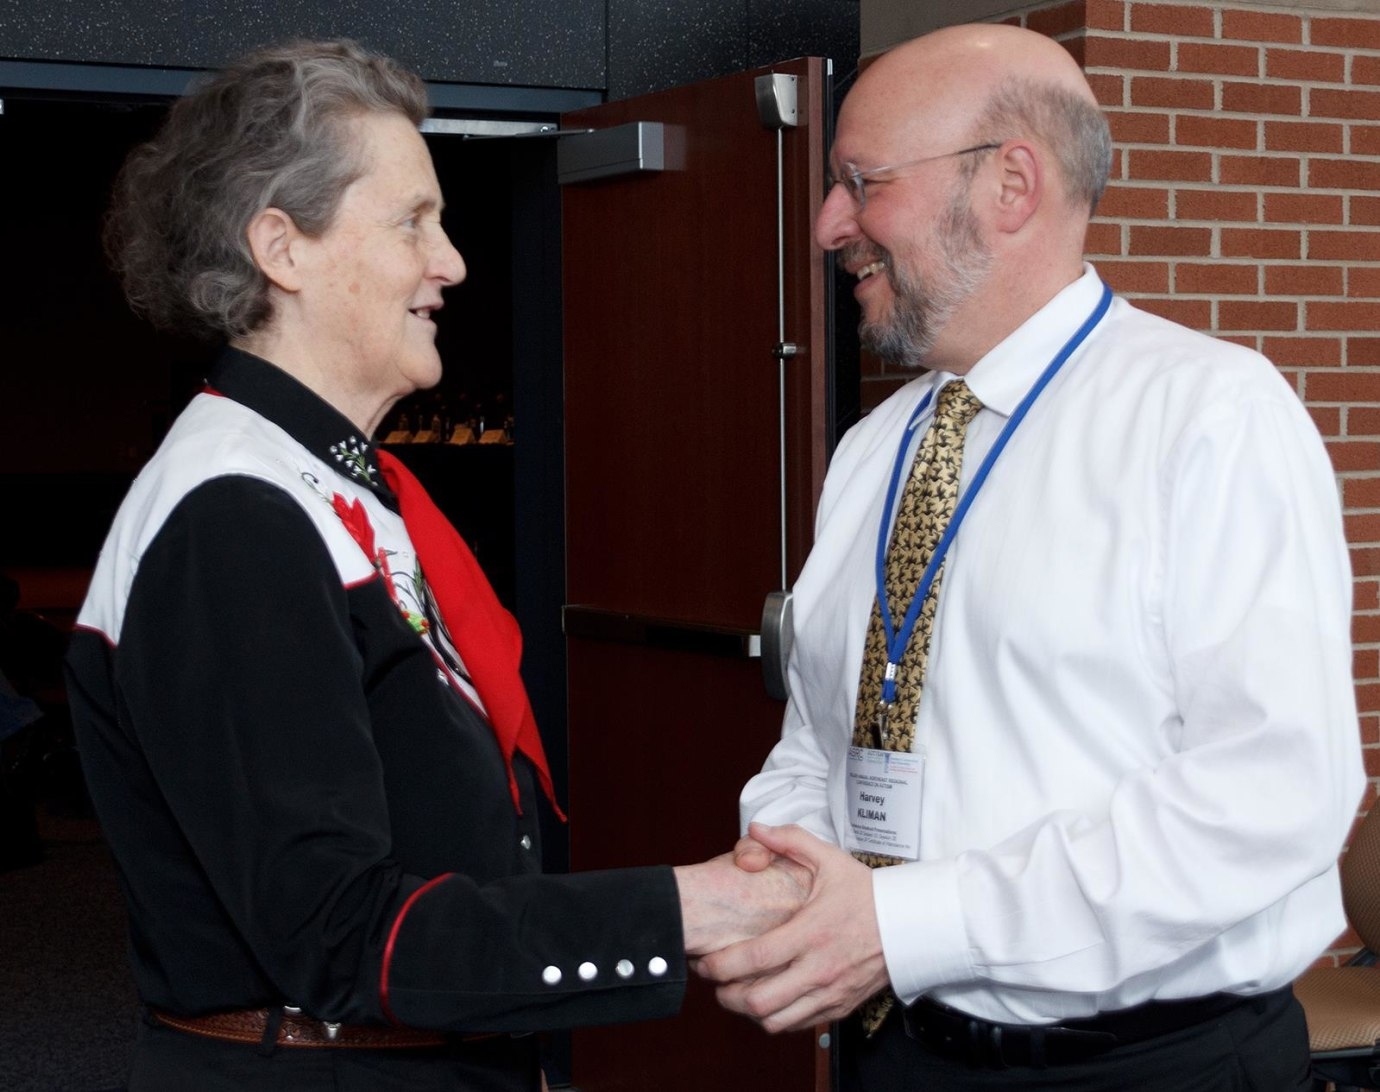 Temple Grandin and Harvey Kliman